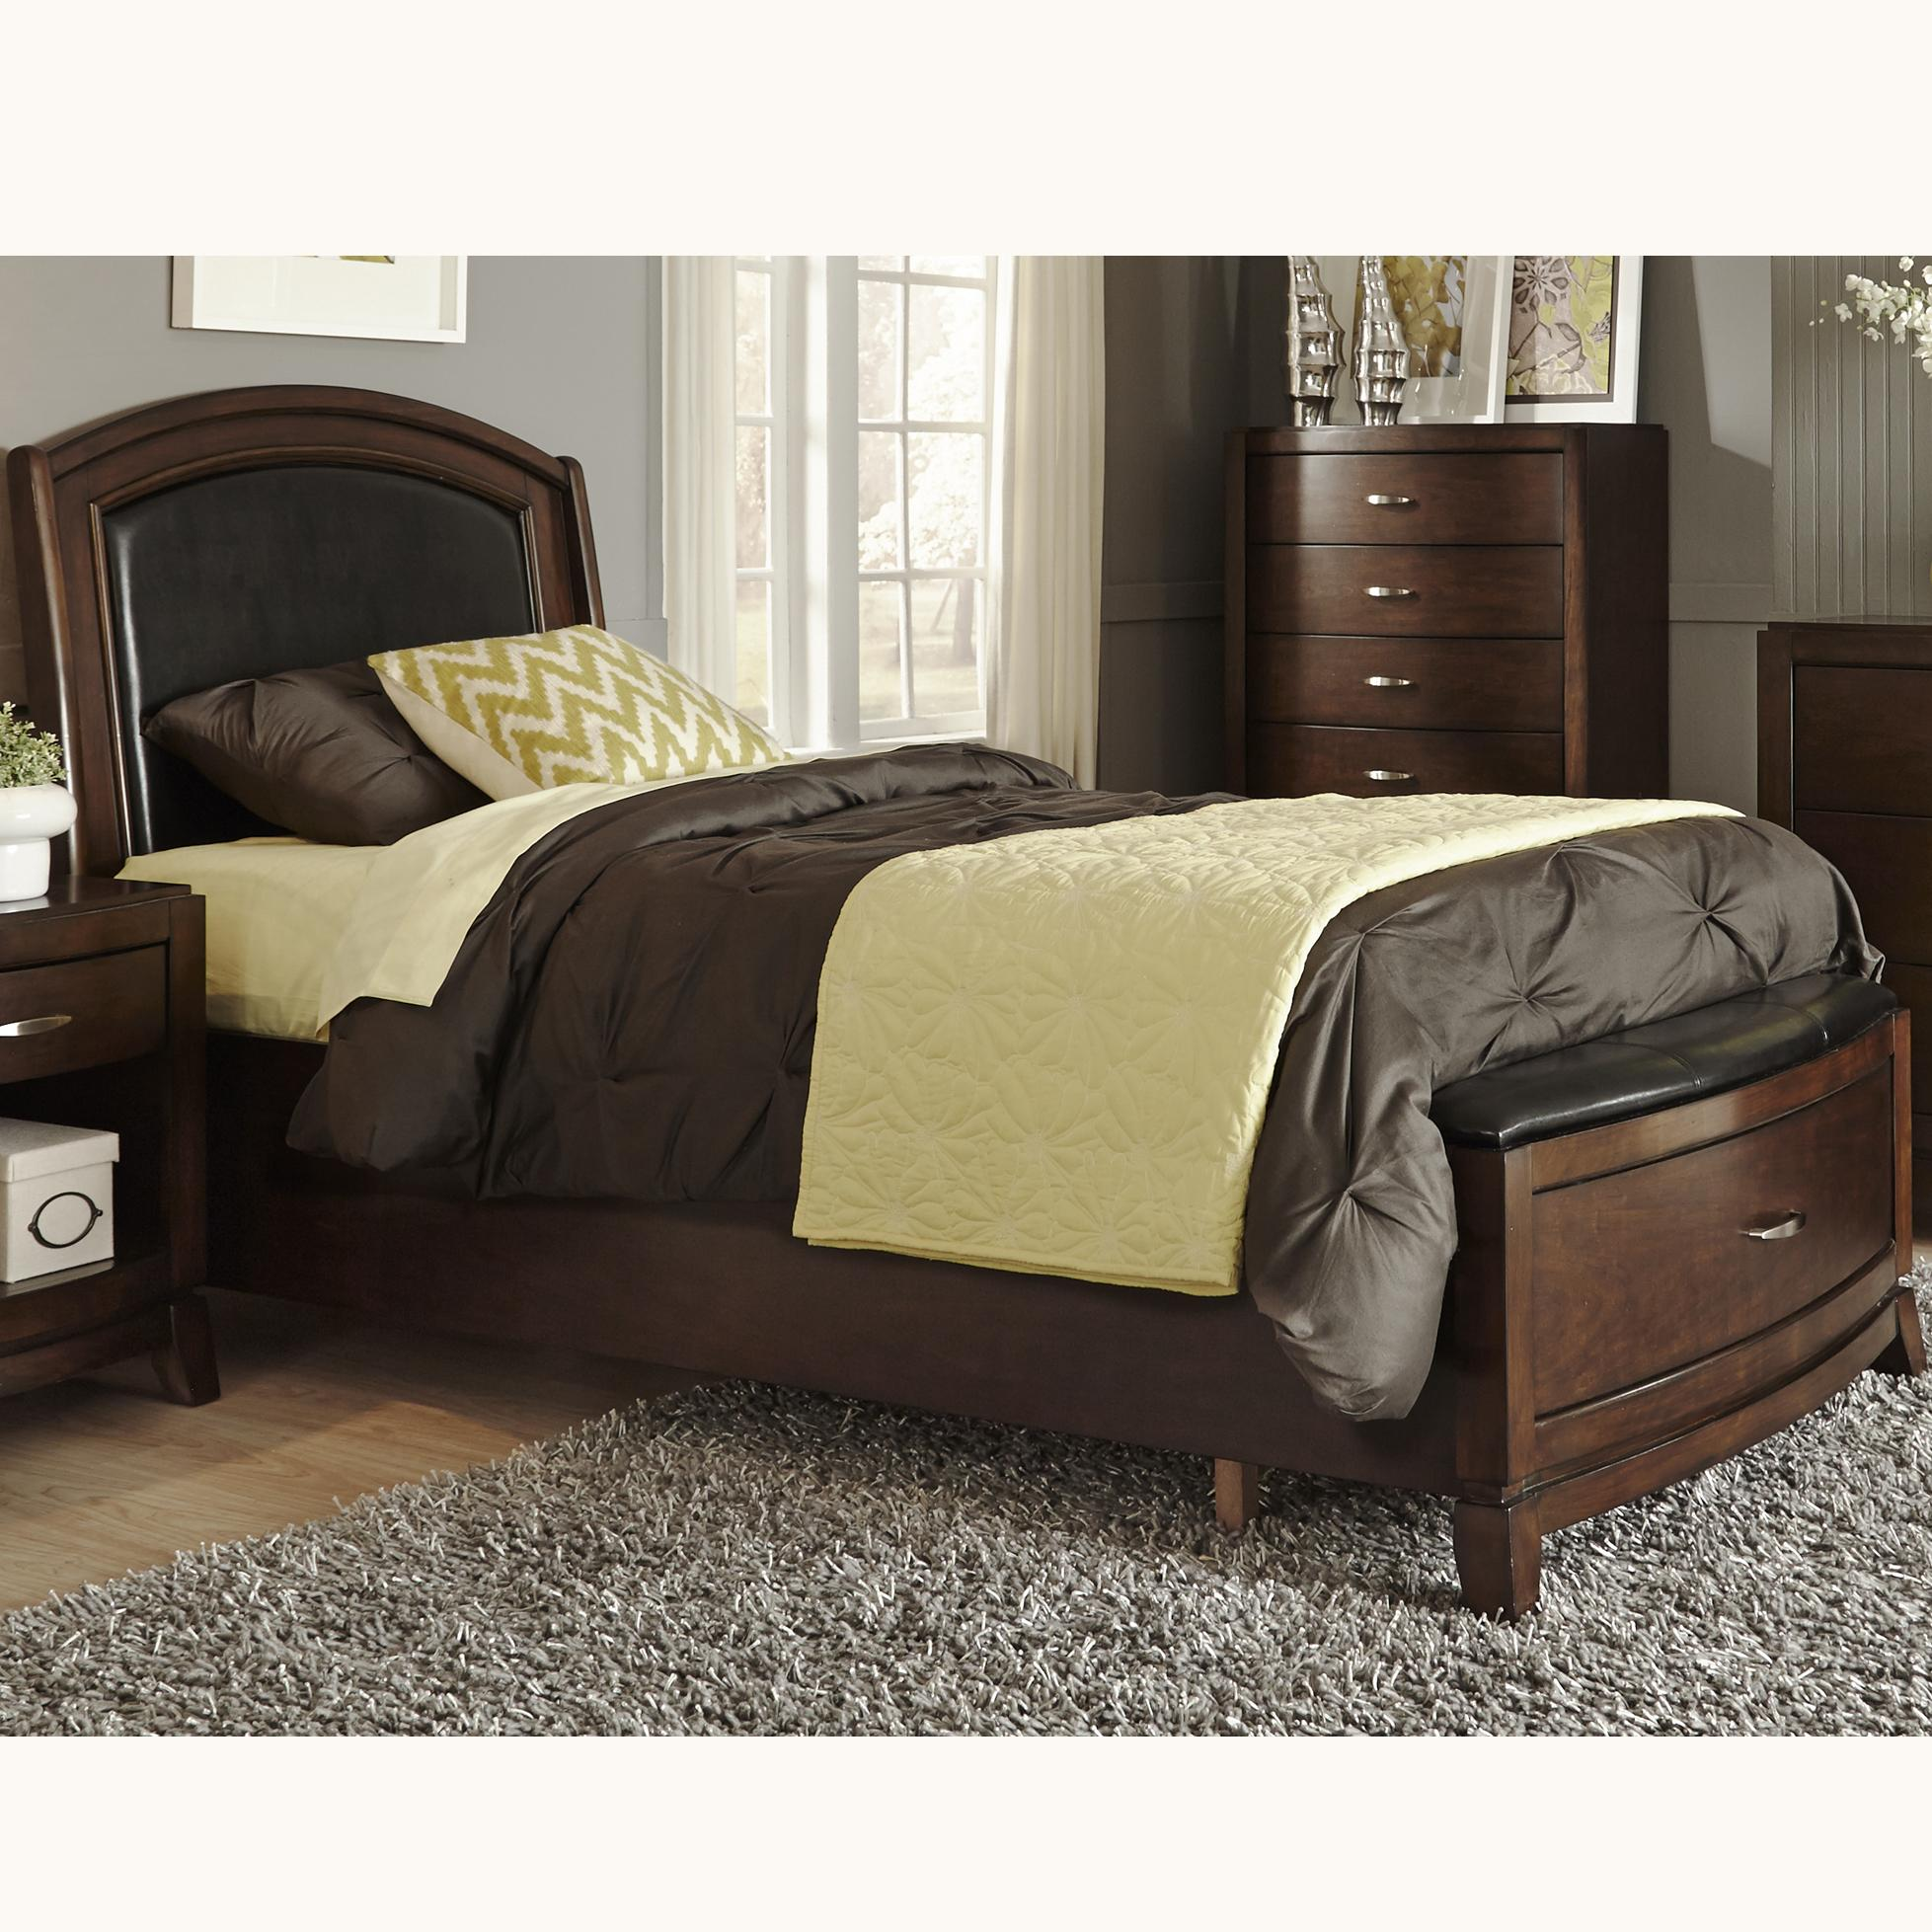 Liberty Furniture Avalon Full Storage Bed - Item Number: 505-YBR-FLS